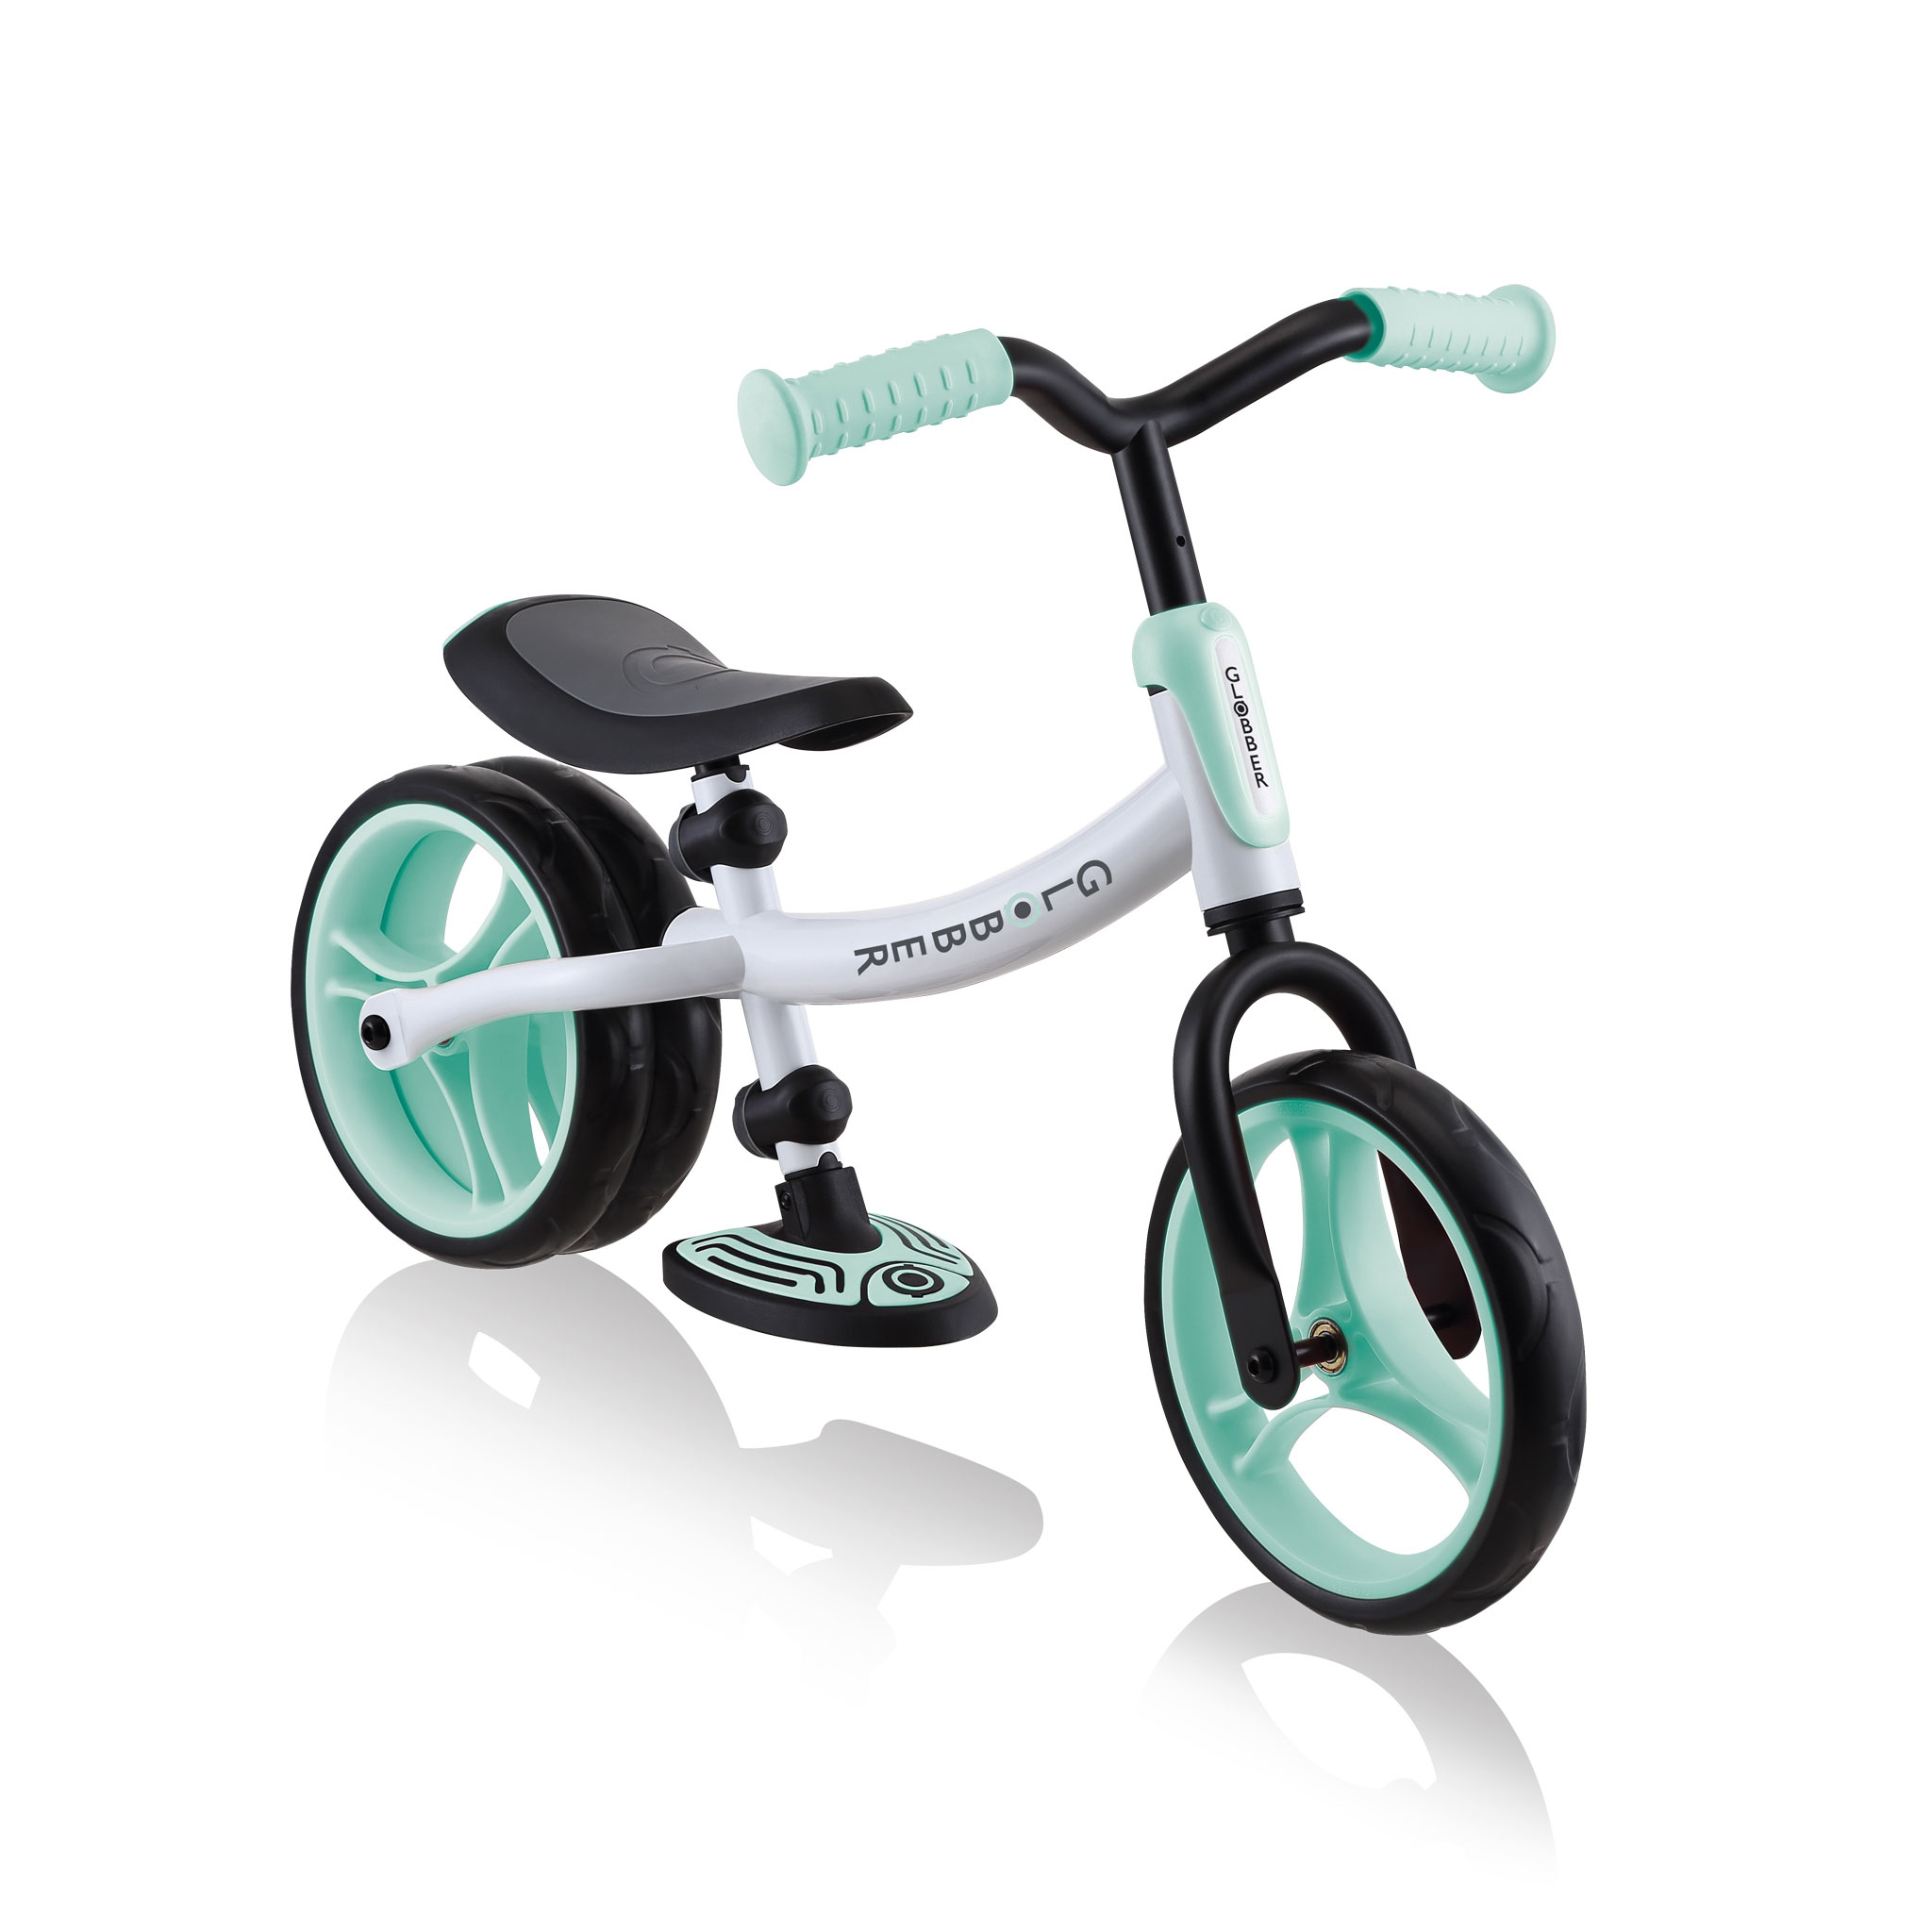 GO-BIKE-DUO-best-toddler-balance-bike-for-girls-and-boys-aged-2-to-5-with-dual-rear-wheel_mint 0